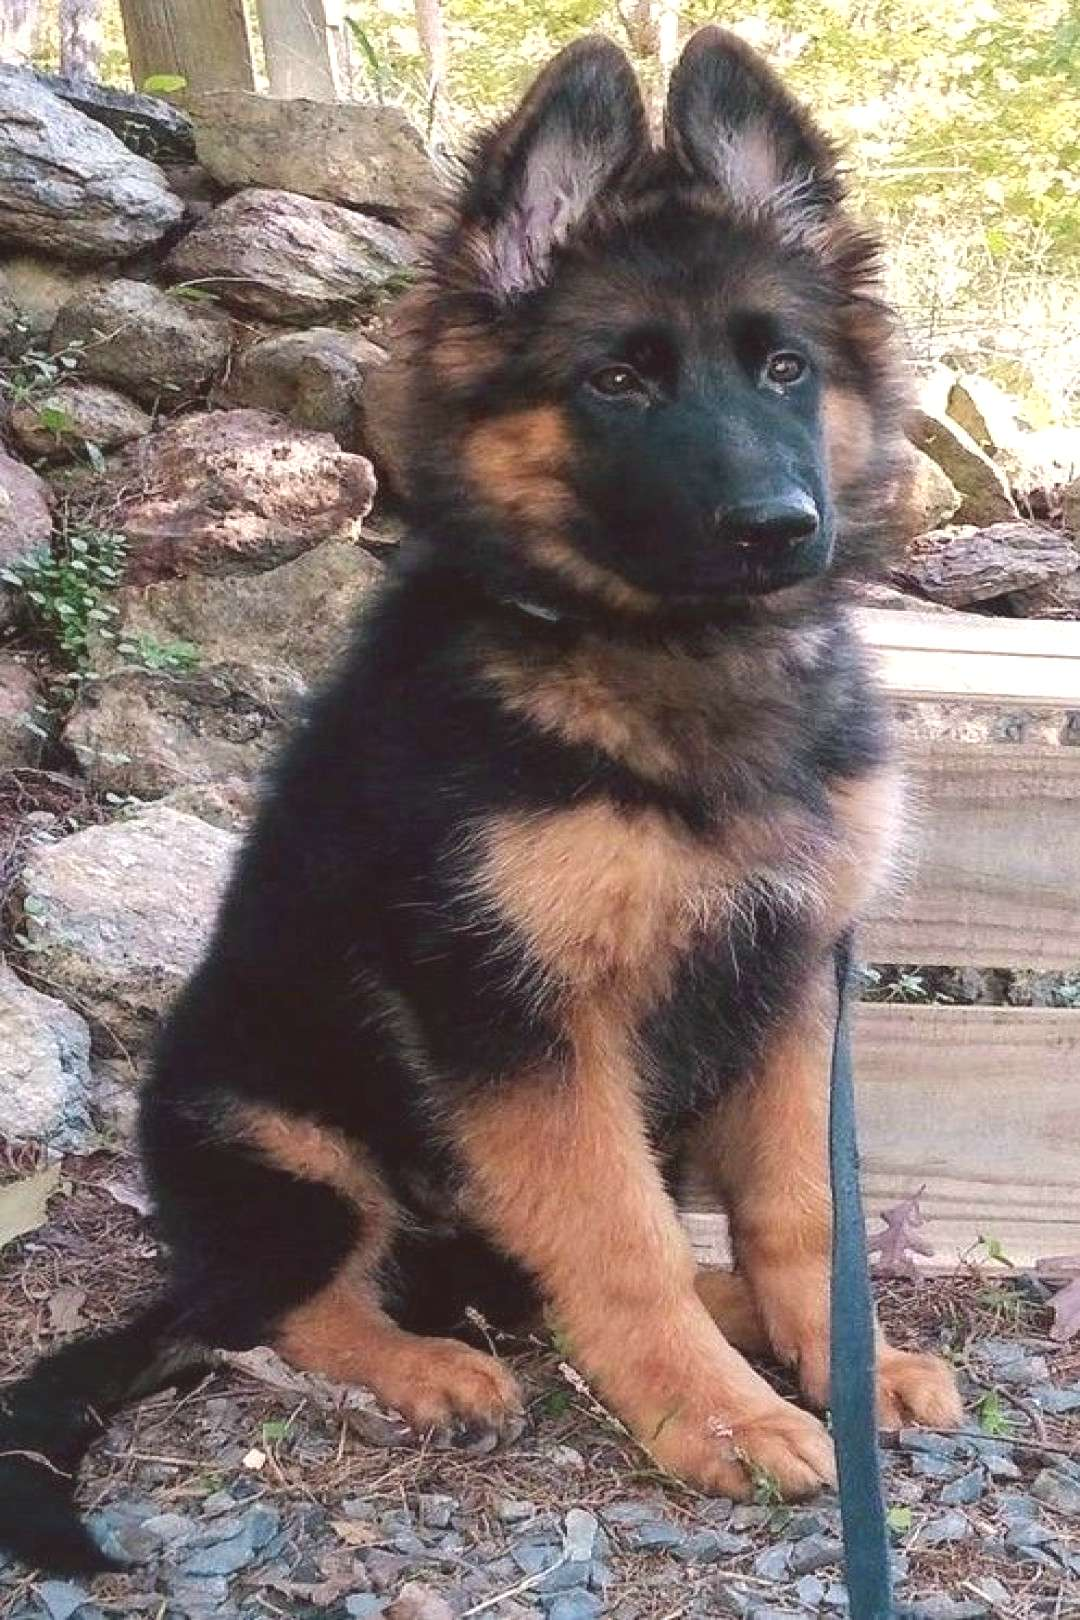 The traits I enjoy about the devoted German Shepherd Pup